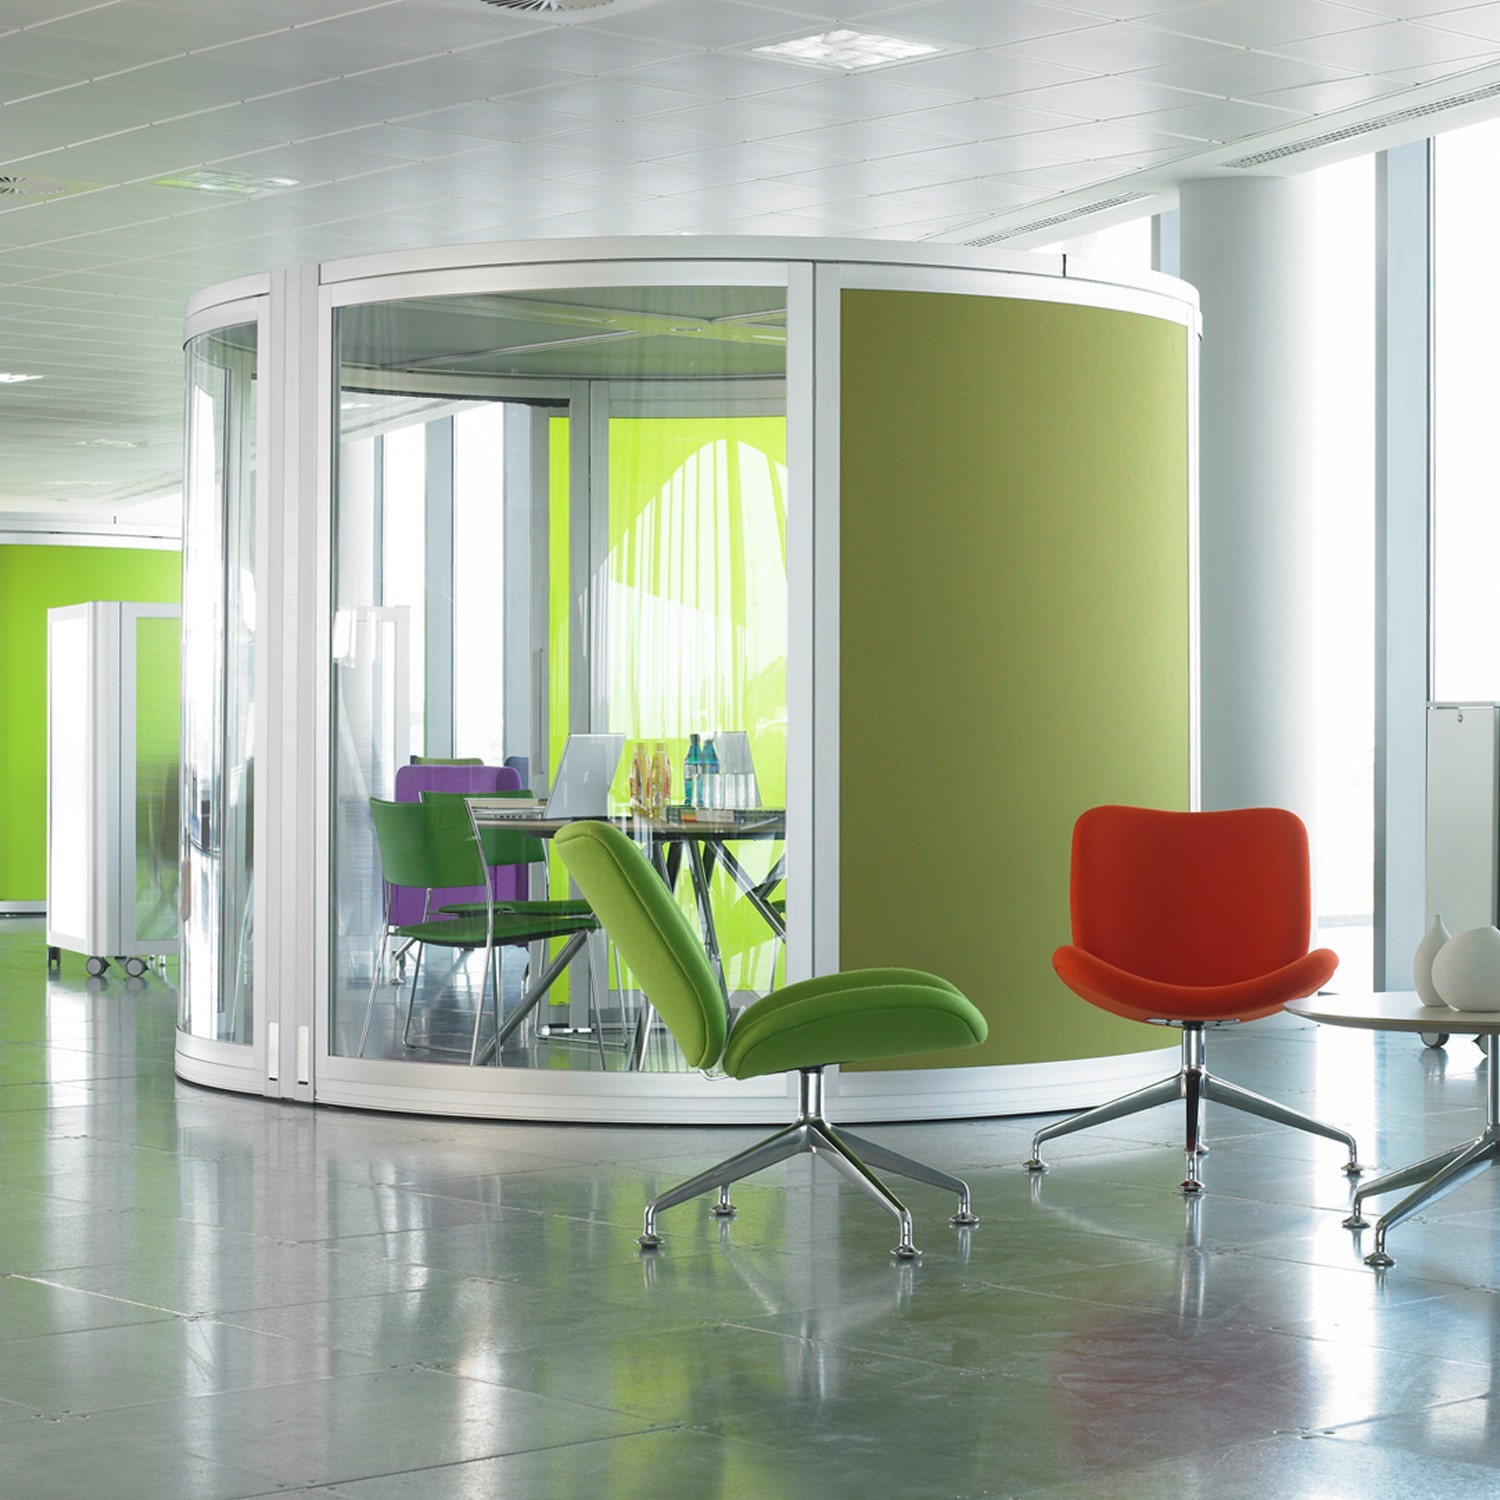 Home Study Interior Design Courses Uk: Office Trends: 2014